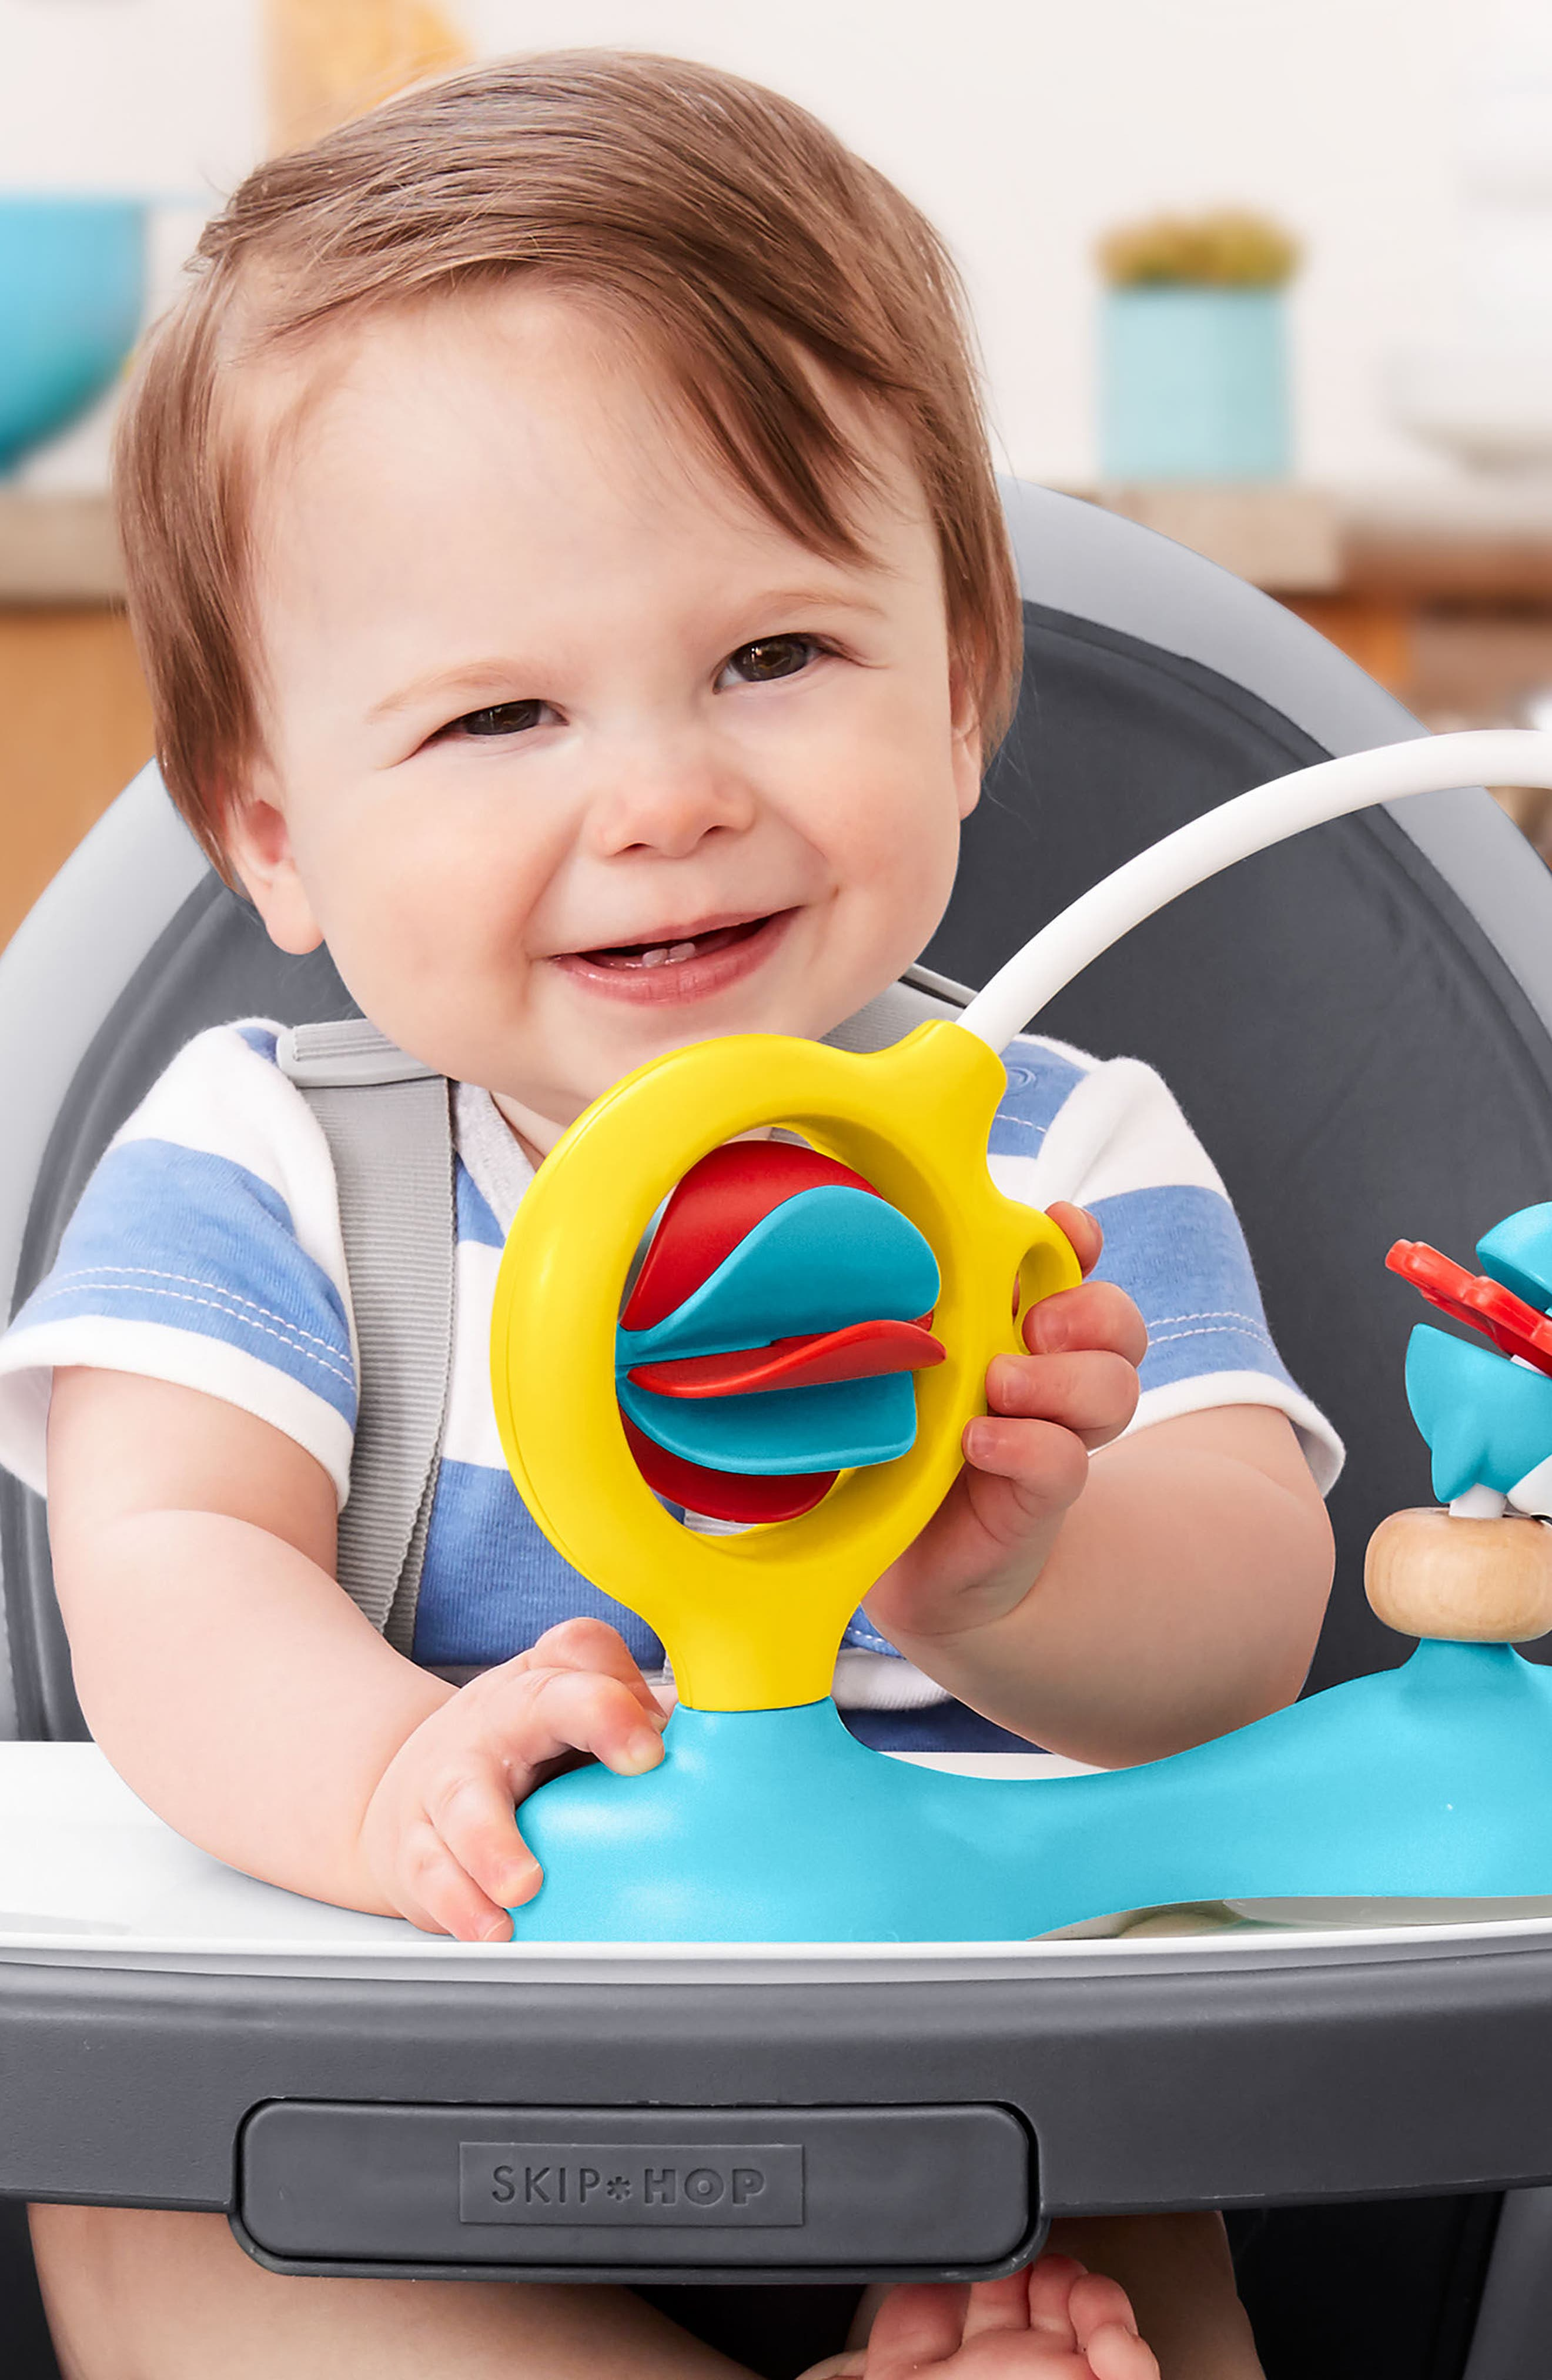 Explore N More Bead Mover Highchair Toy,                             Alternate thumbnail 2, color,                             Bead Mover